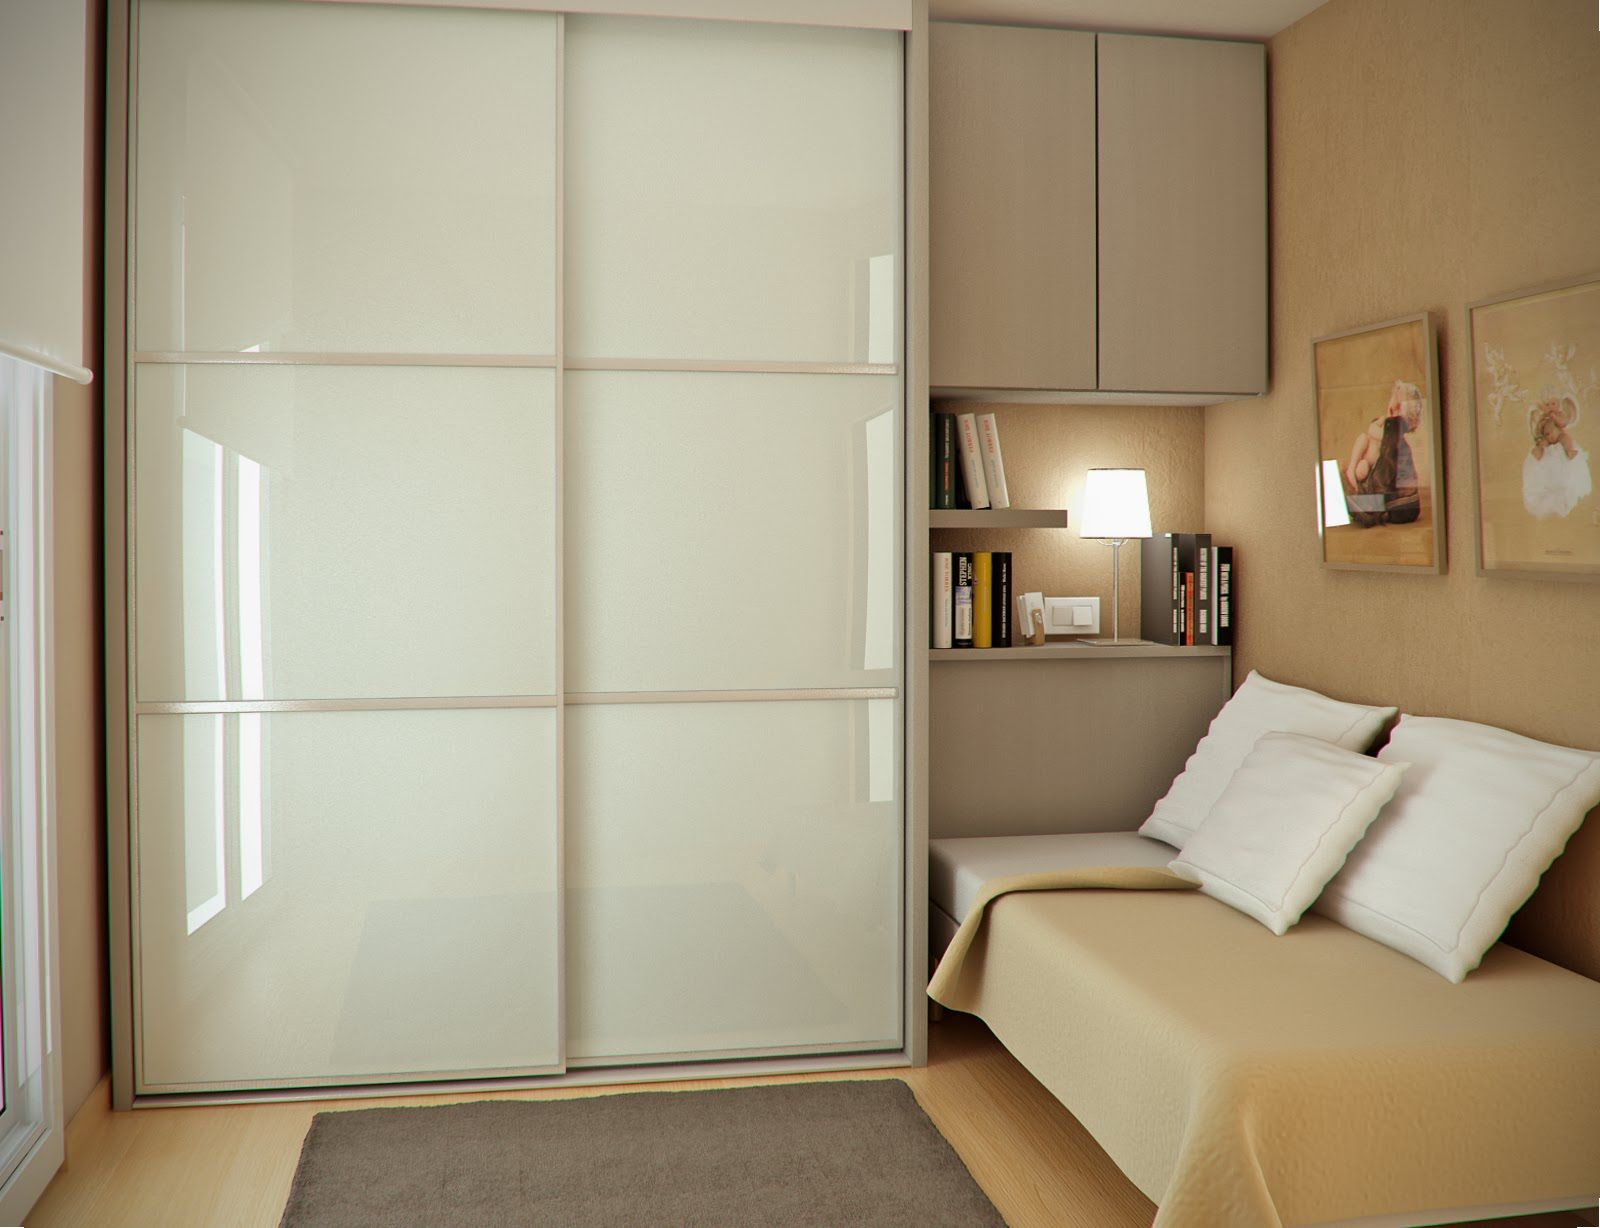 30 Space Saving Beds For Small Rooms Space Saving Beds Built In